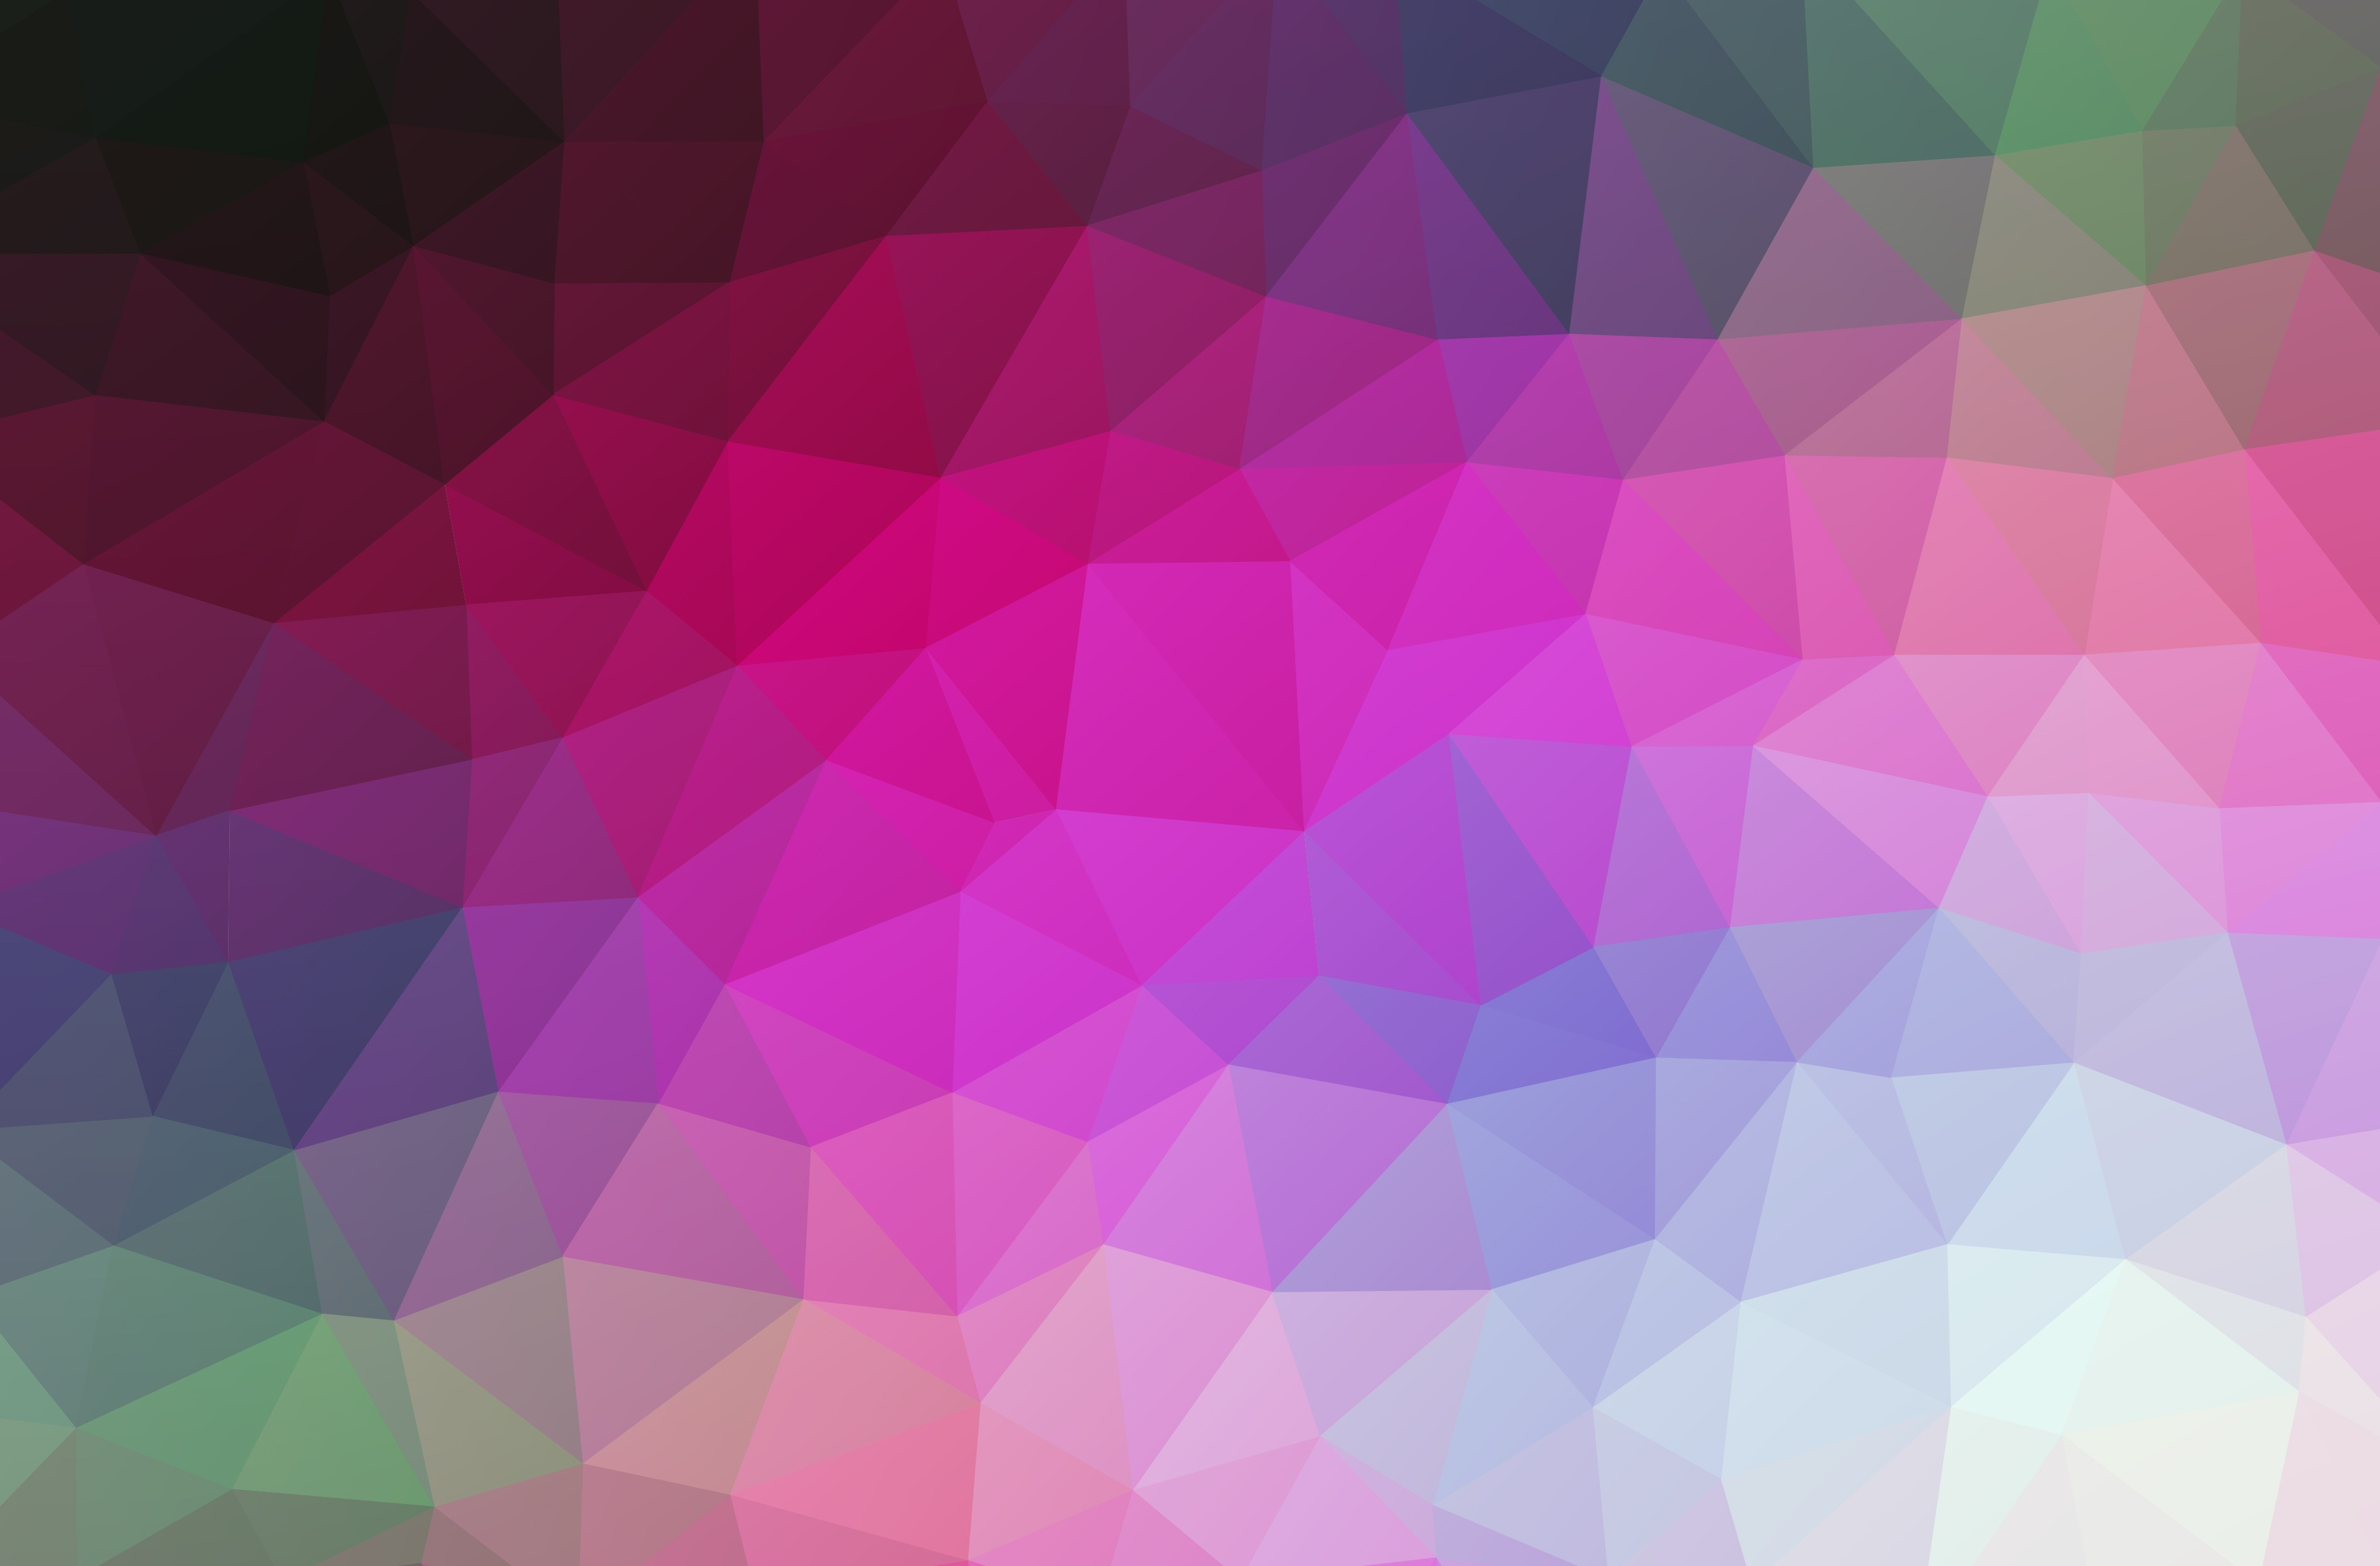 117684 download wallpaper Pink, Texture, Textures, Geometric, Triangle, Polygon screensavers and pictures for free